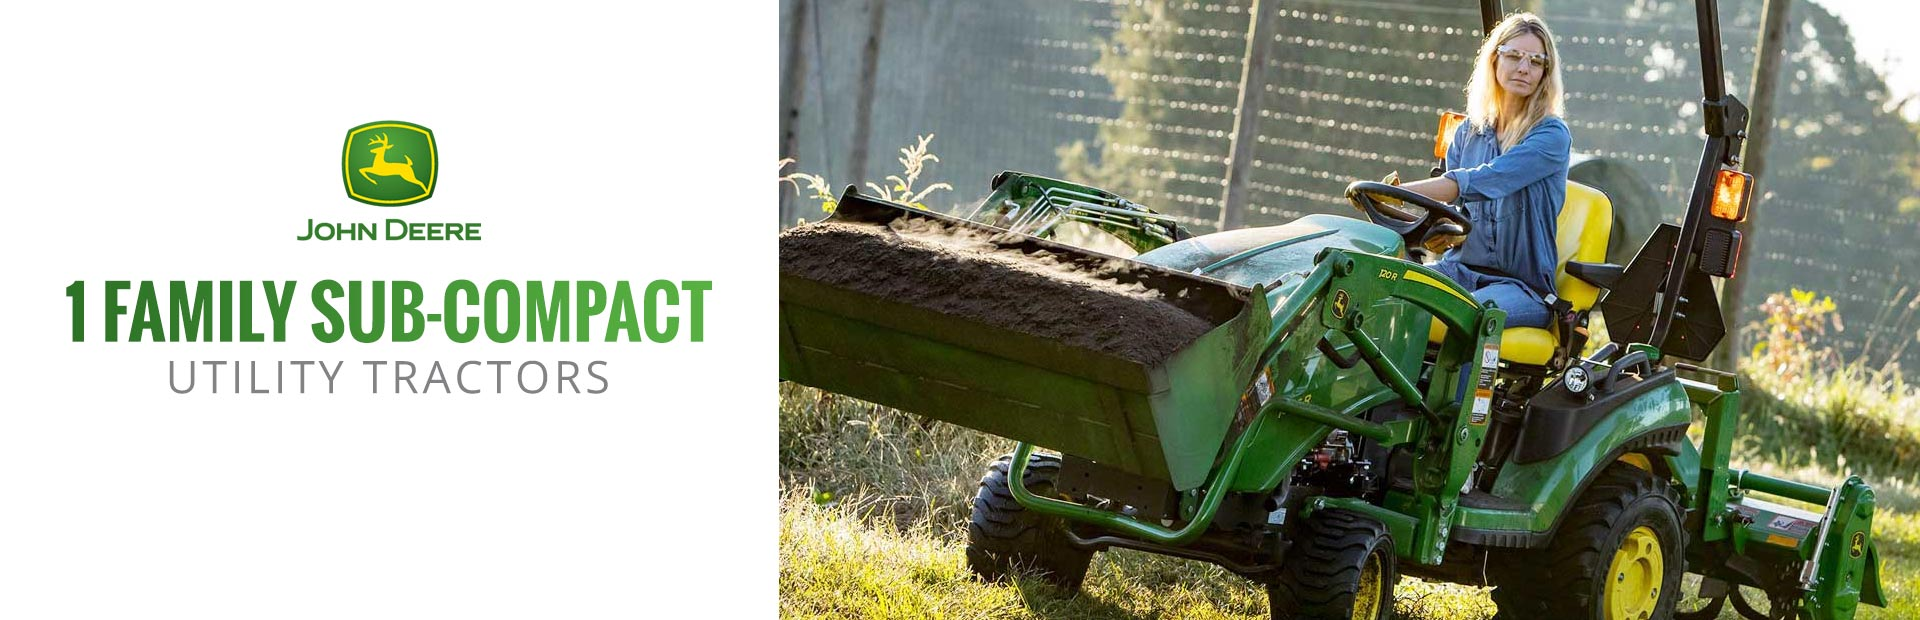 John Deere: 1 Family Sub-Compact Utility Tractors